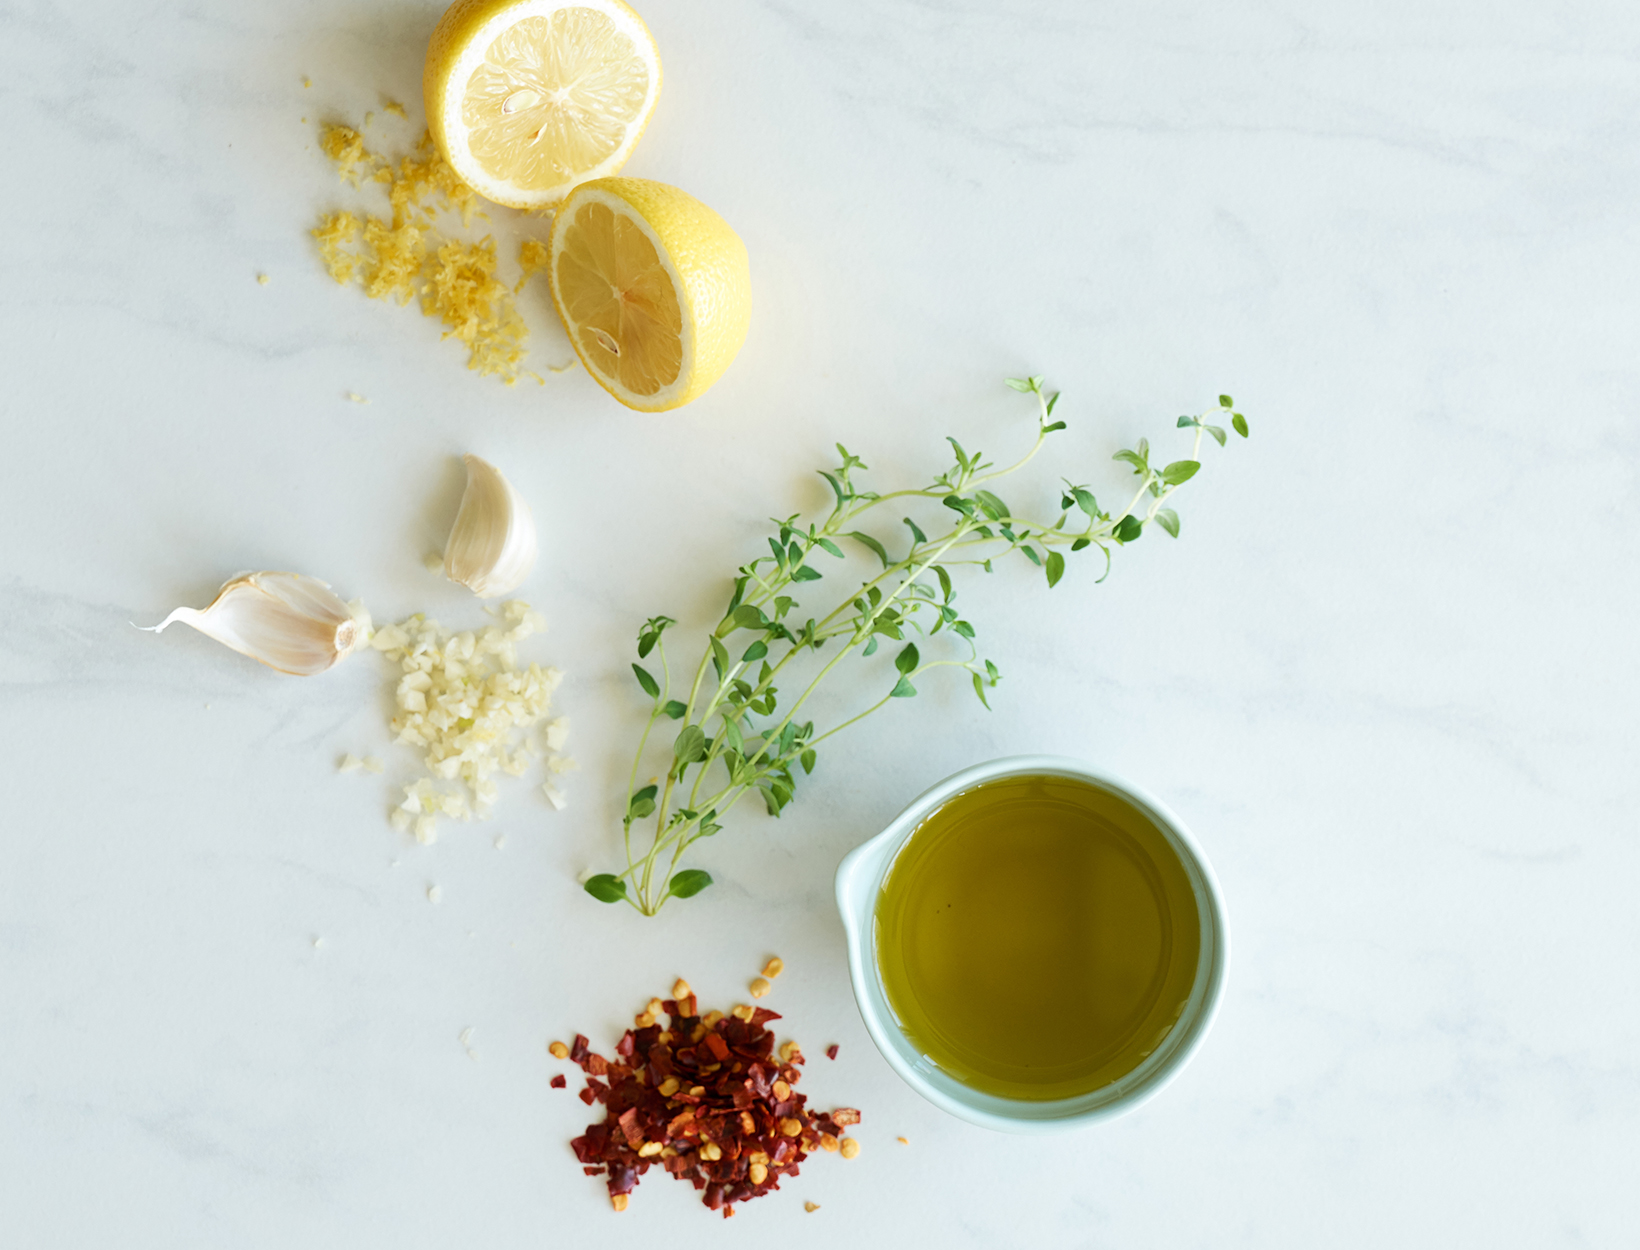 Lemon, Garlic & Chili Marinade